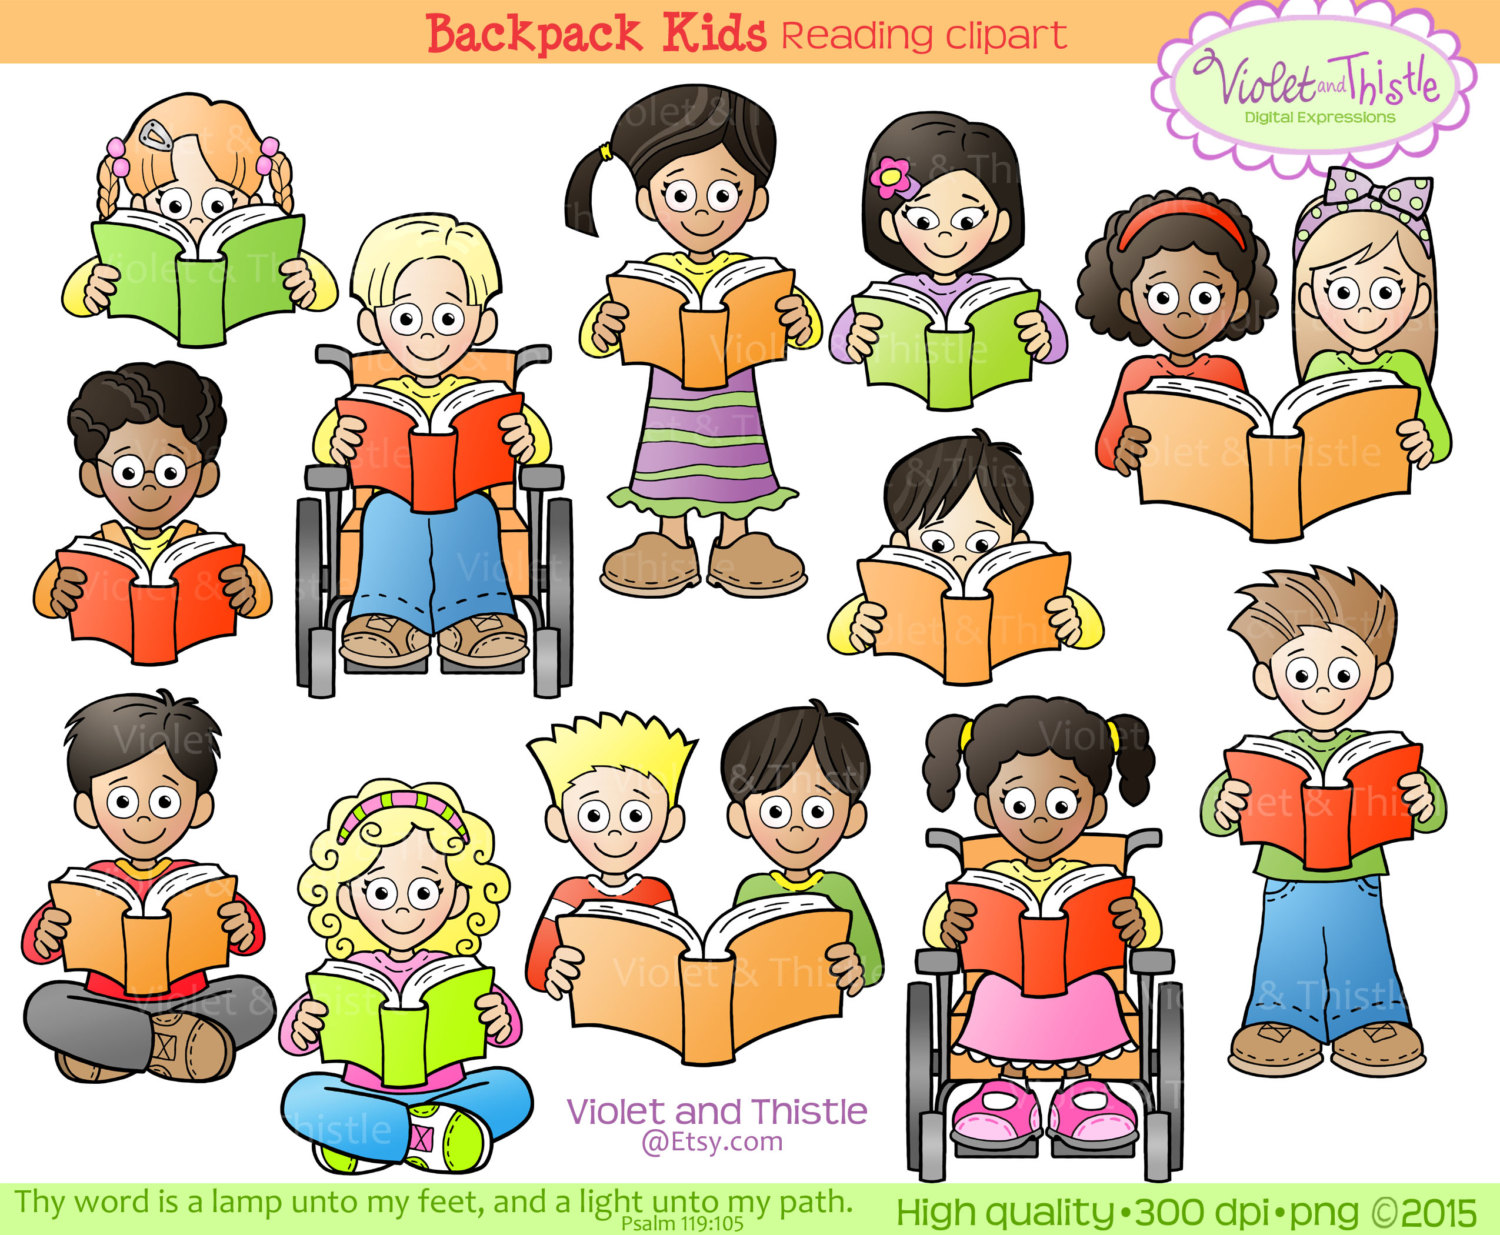 kids reading clipart kids clip art children reading school clip art rh etsystudio com Free Art Clip Art School Symbols Clip Art